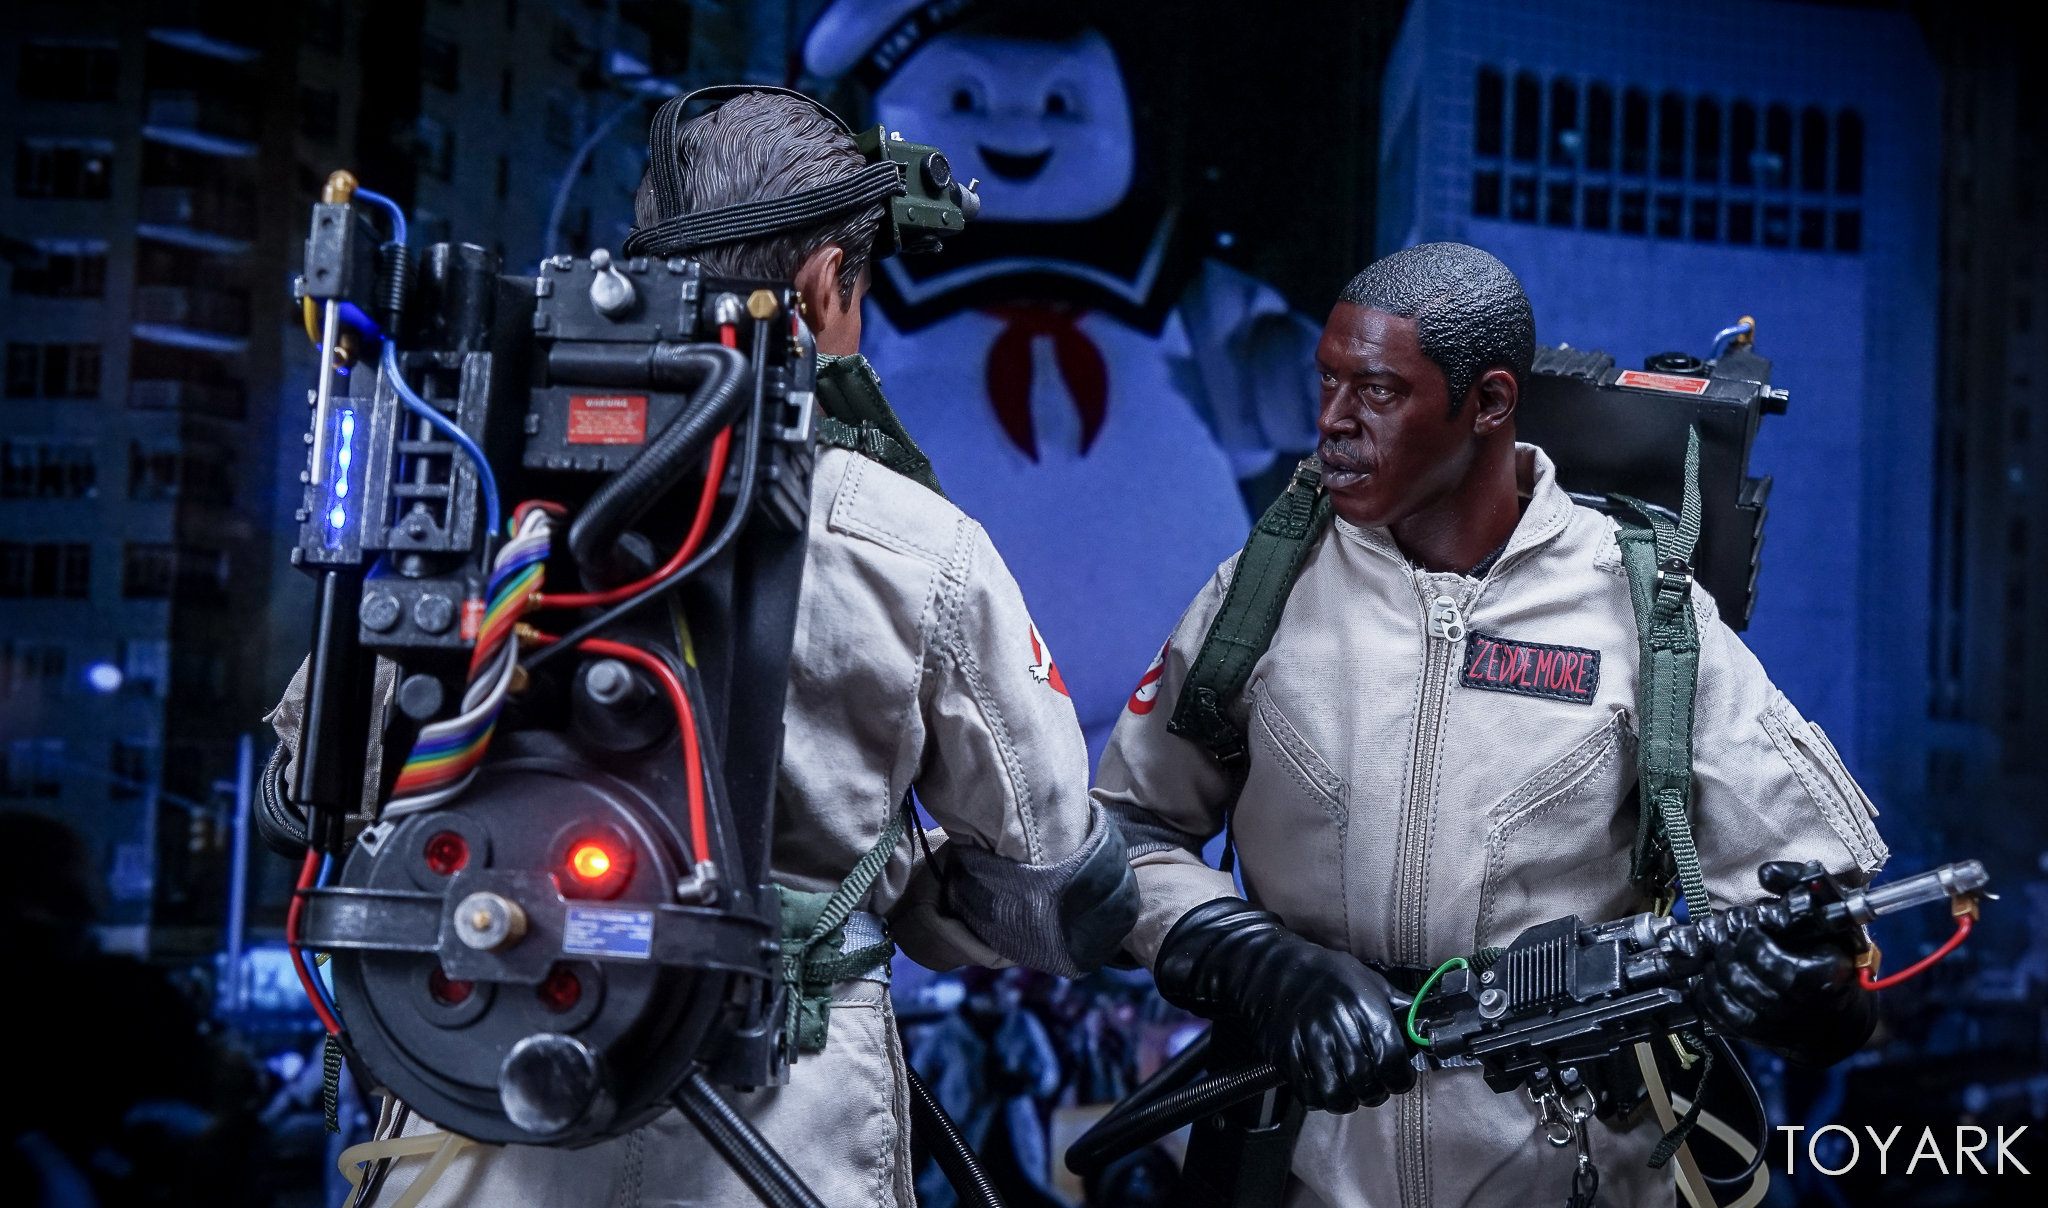 http://news.toyark.com/wp-content/uploads/sites/4/2017/10/Blitzway-Ghostbusters-Special-Set-204.jpg